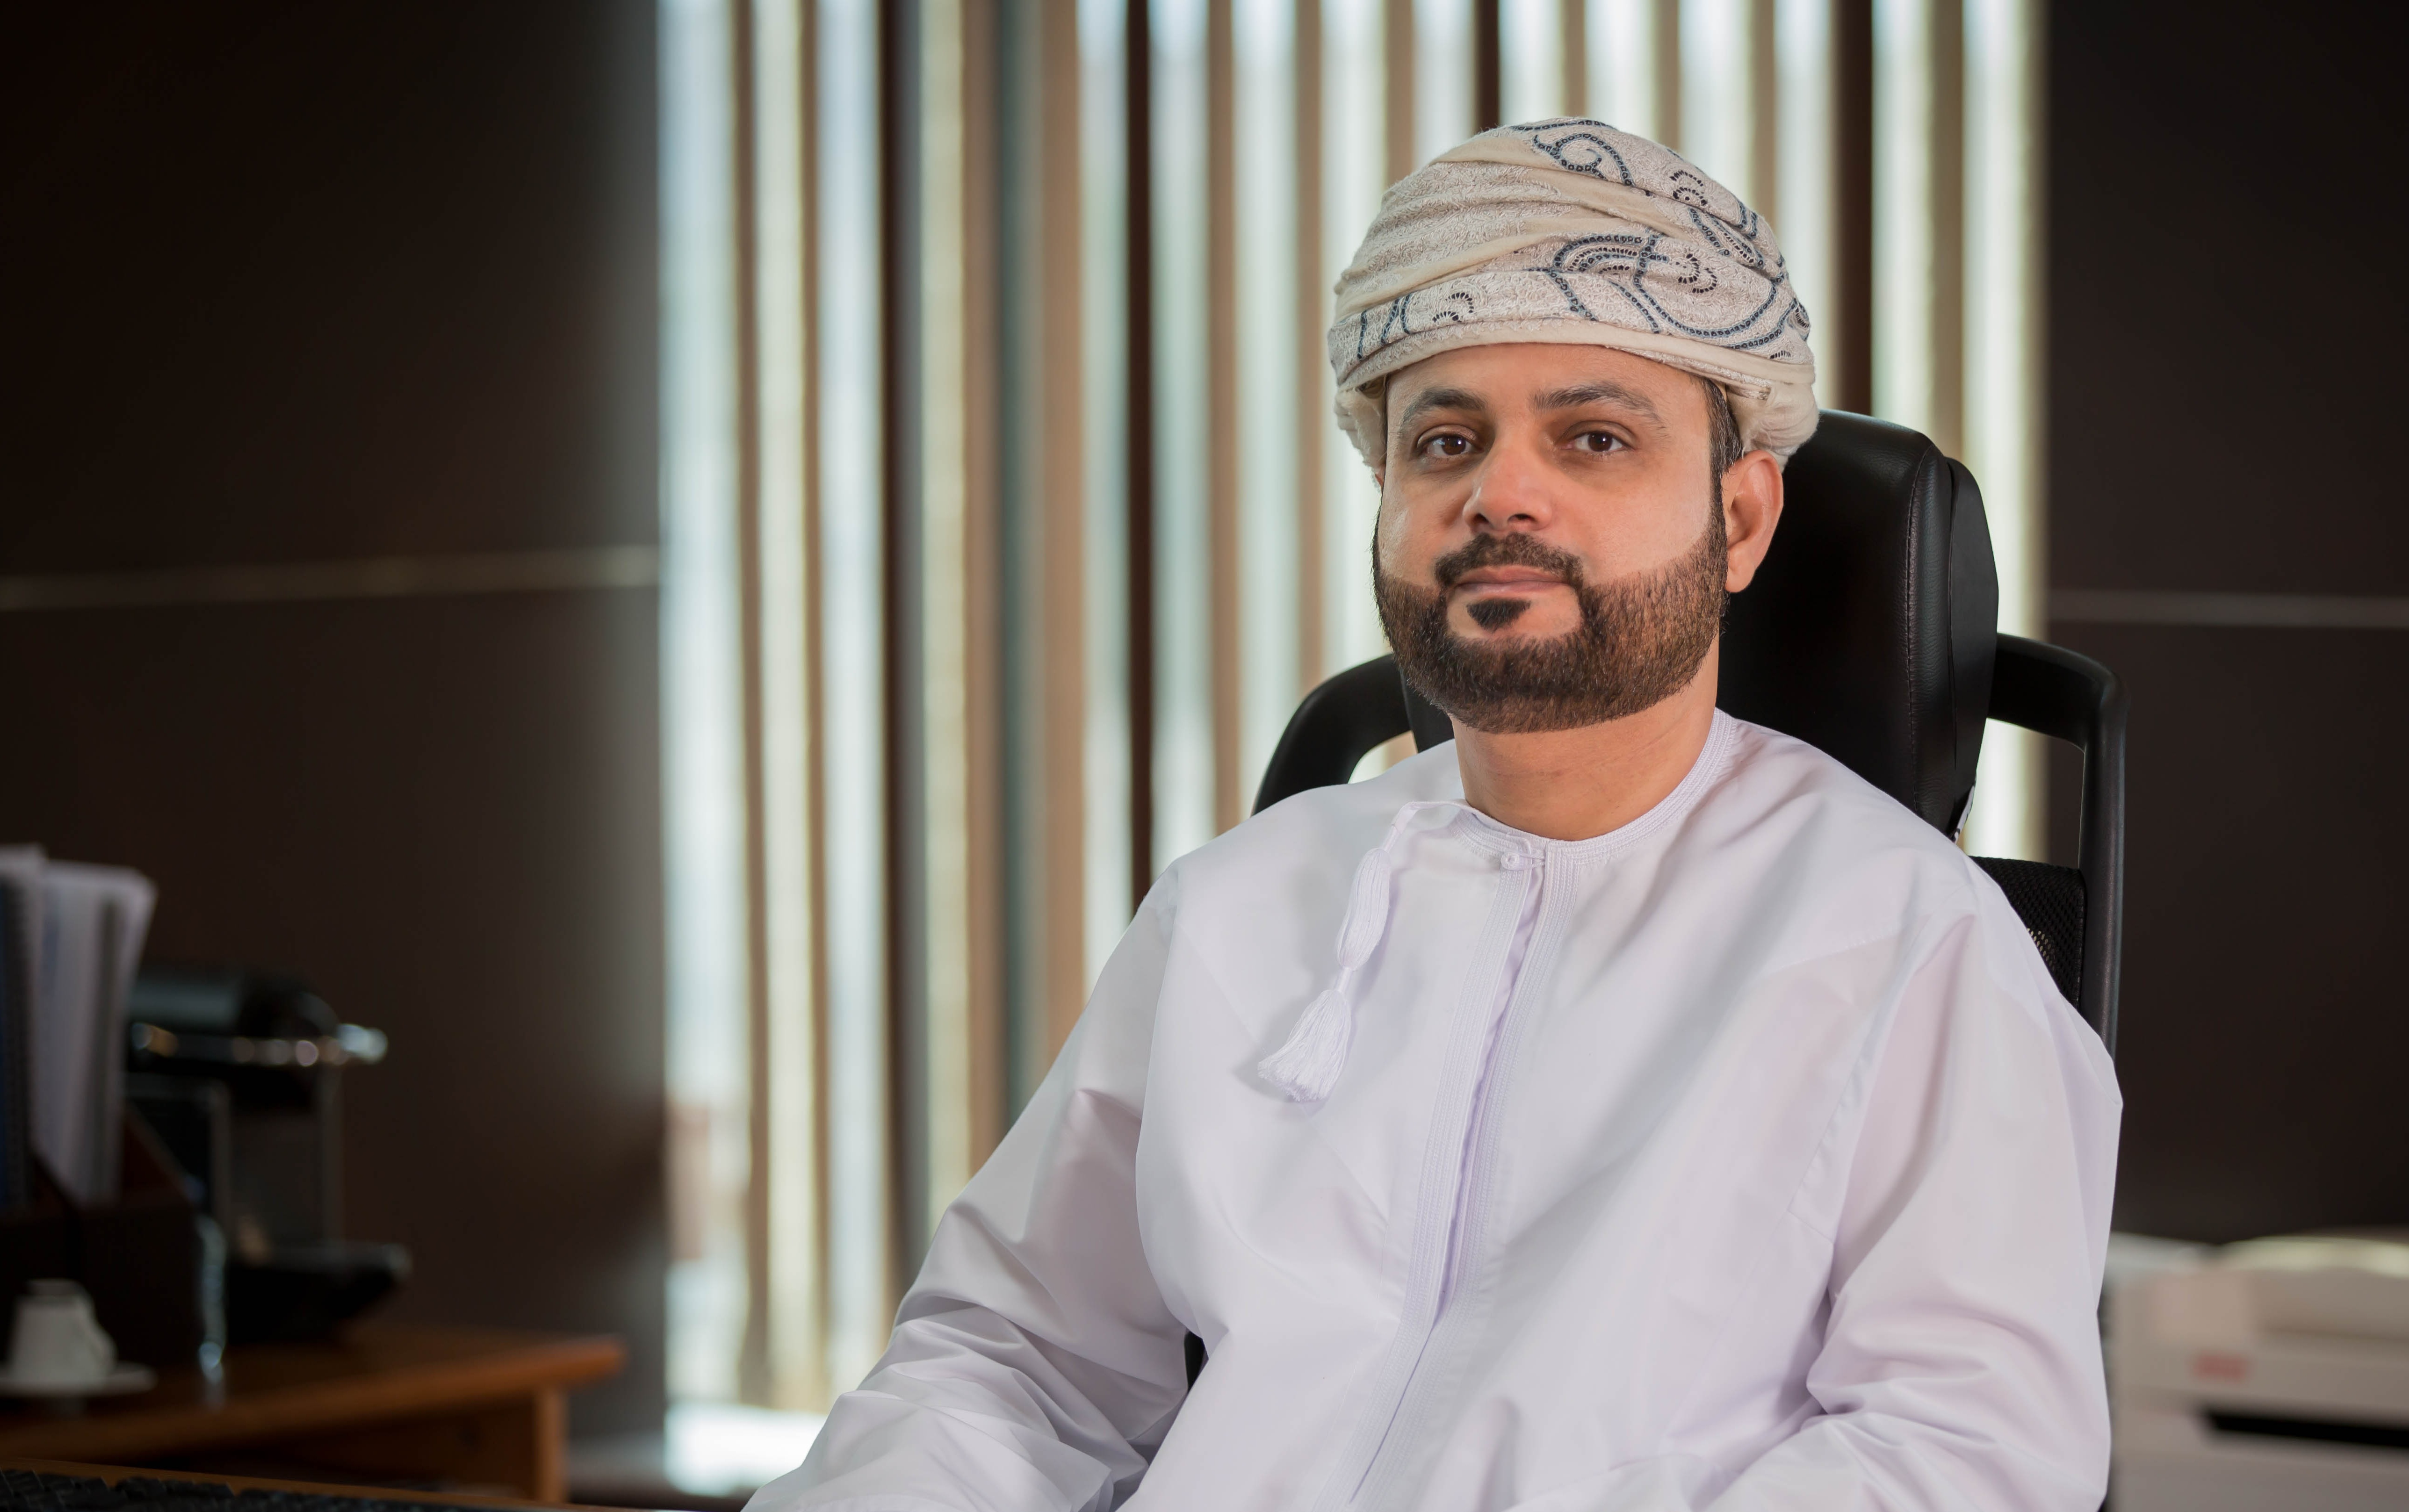 Omantel connects Africa to Asia with subsea cable systems